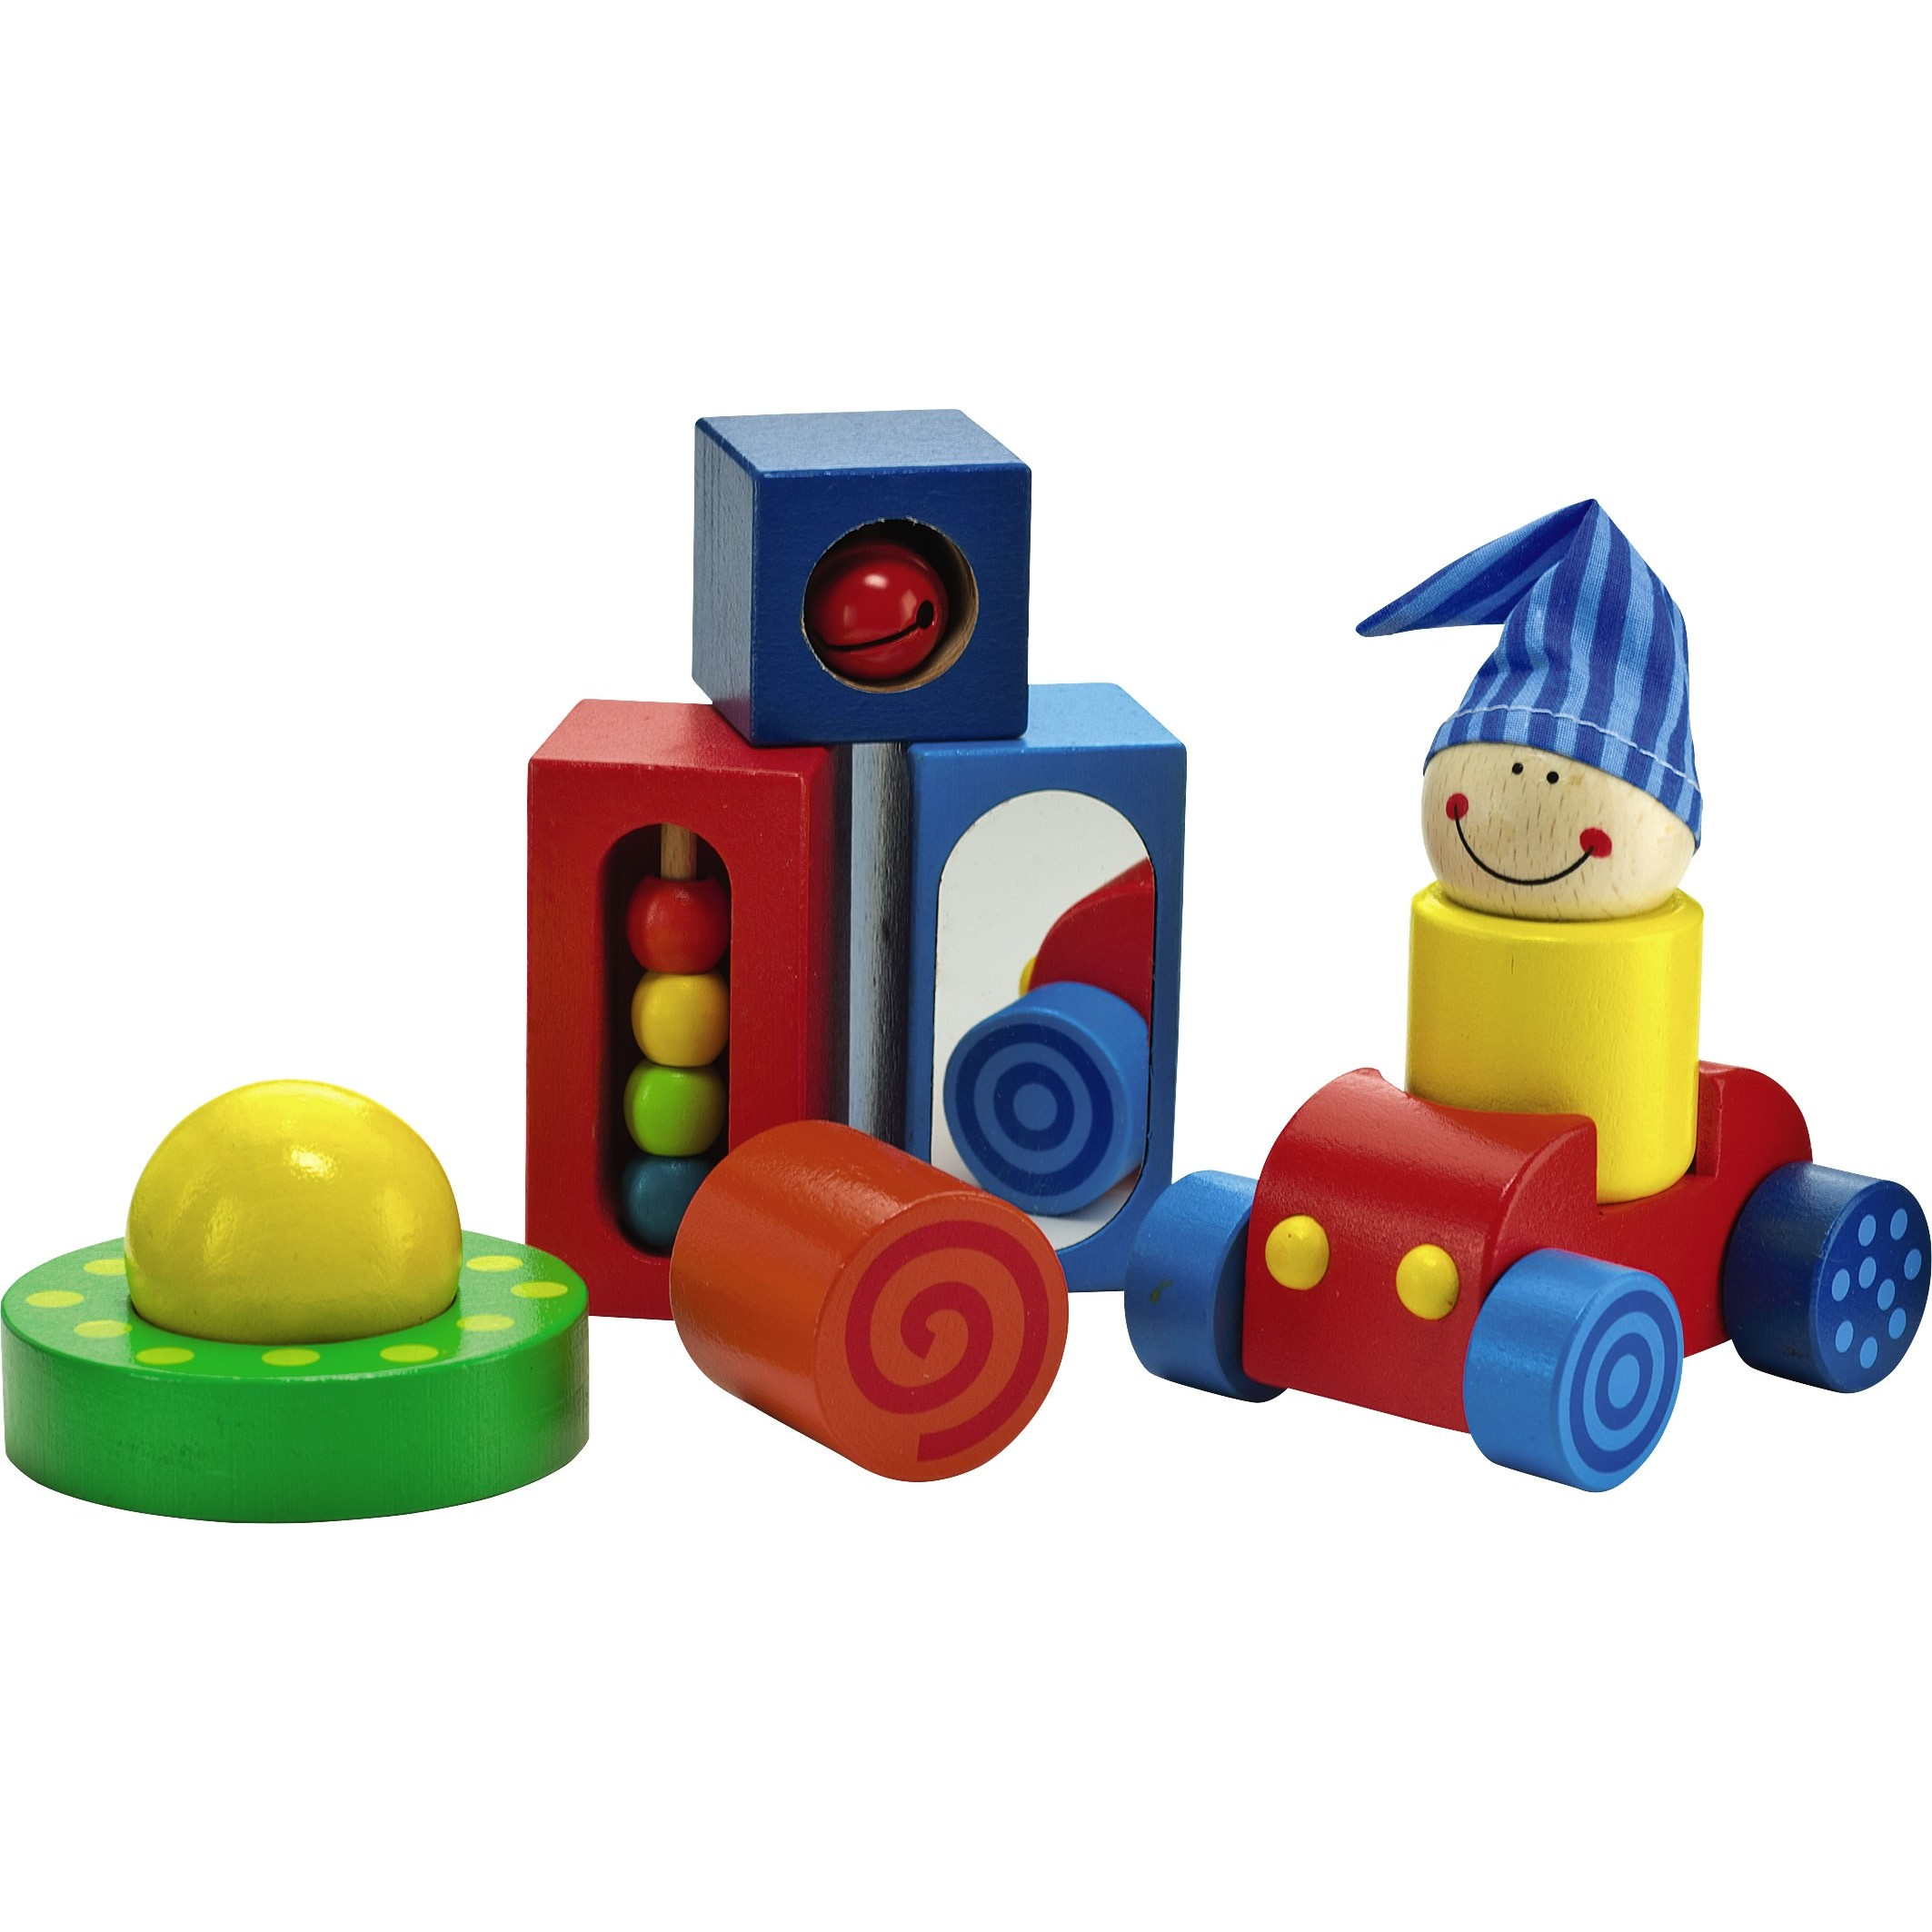 HABA Play Shapes 8 Piece First Building Block Set for Ages 12 Months and Up by HABA